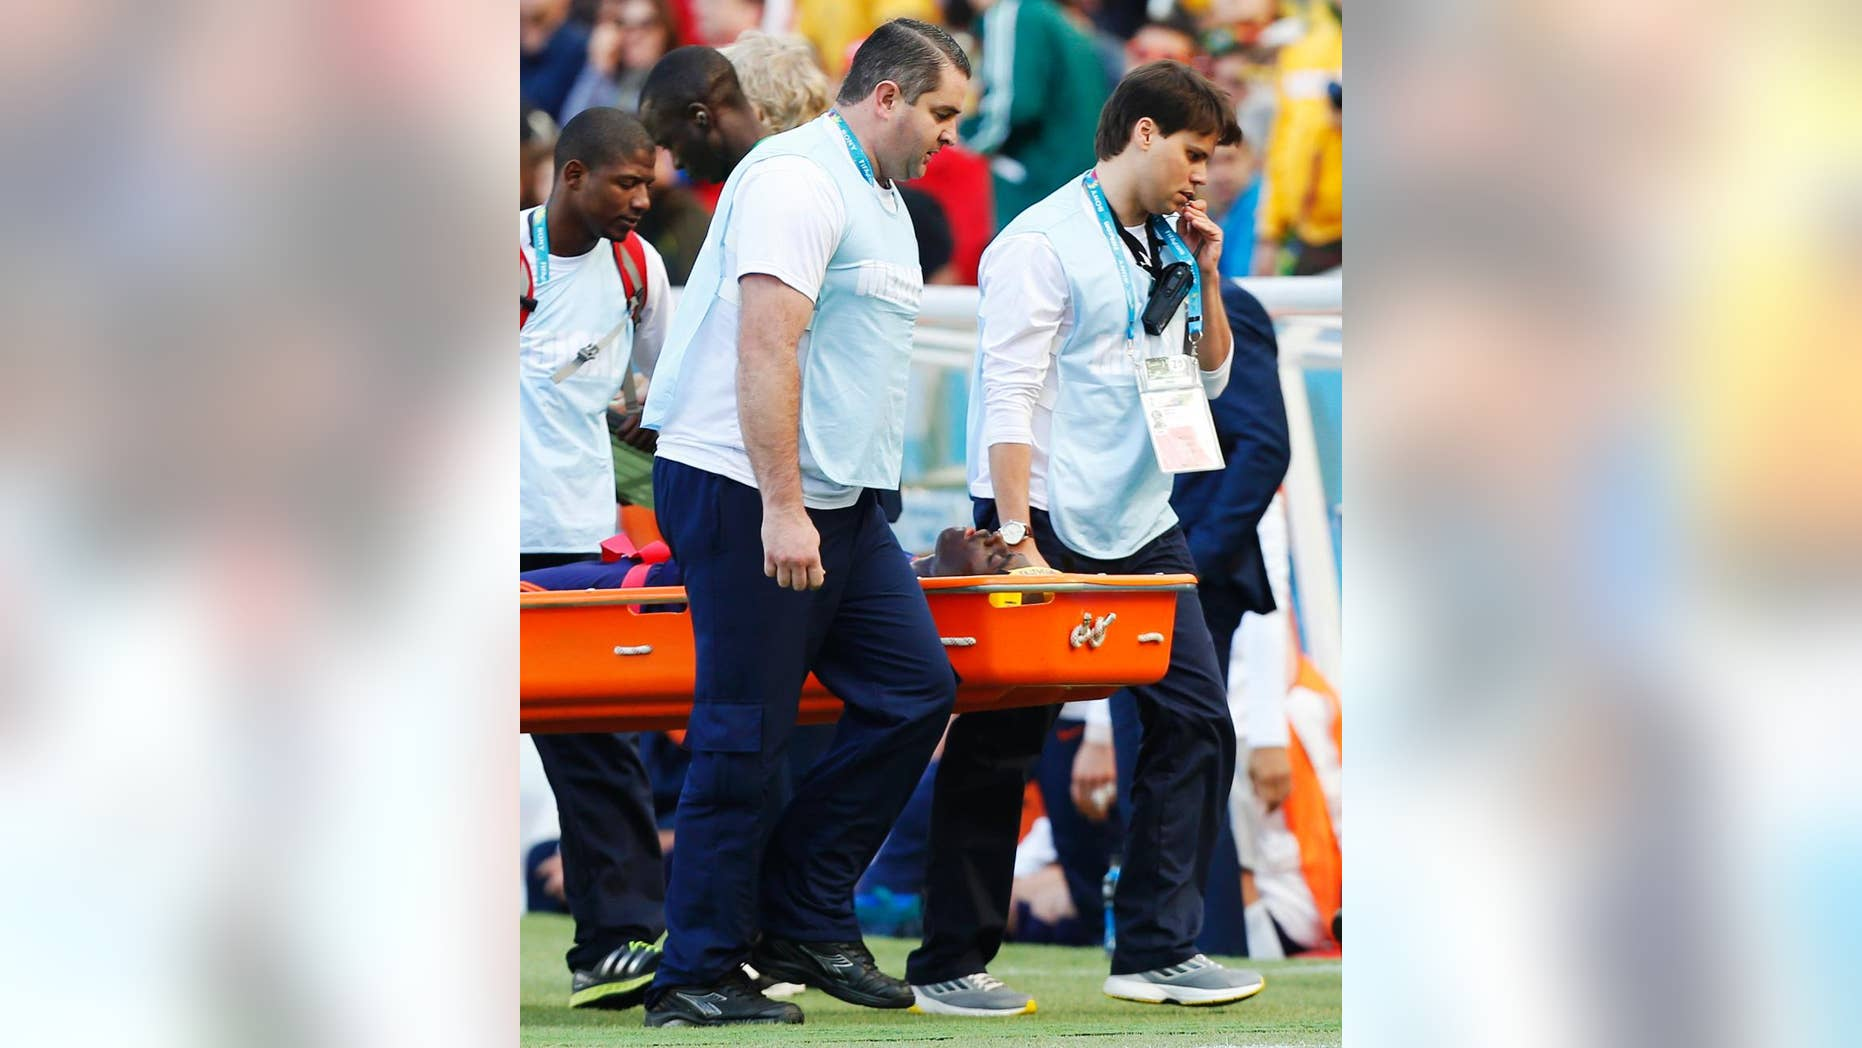 Netherlands' Bruno Martins Indi is carried off the pitch in a stretcher after a collision with Australia's Tim Cahill during the group B World Cup soccer match between Australia and the Netherlands at the Estadio Beira-Rio in Porto Alegre, Brazil, Wednesday, June 18, 2014.  (AP Photo/Jon Super)